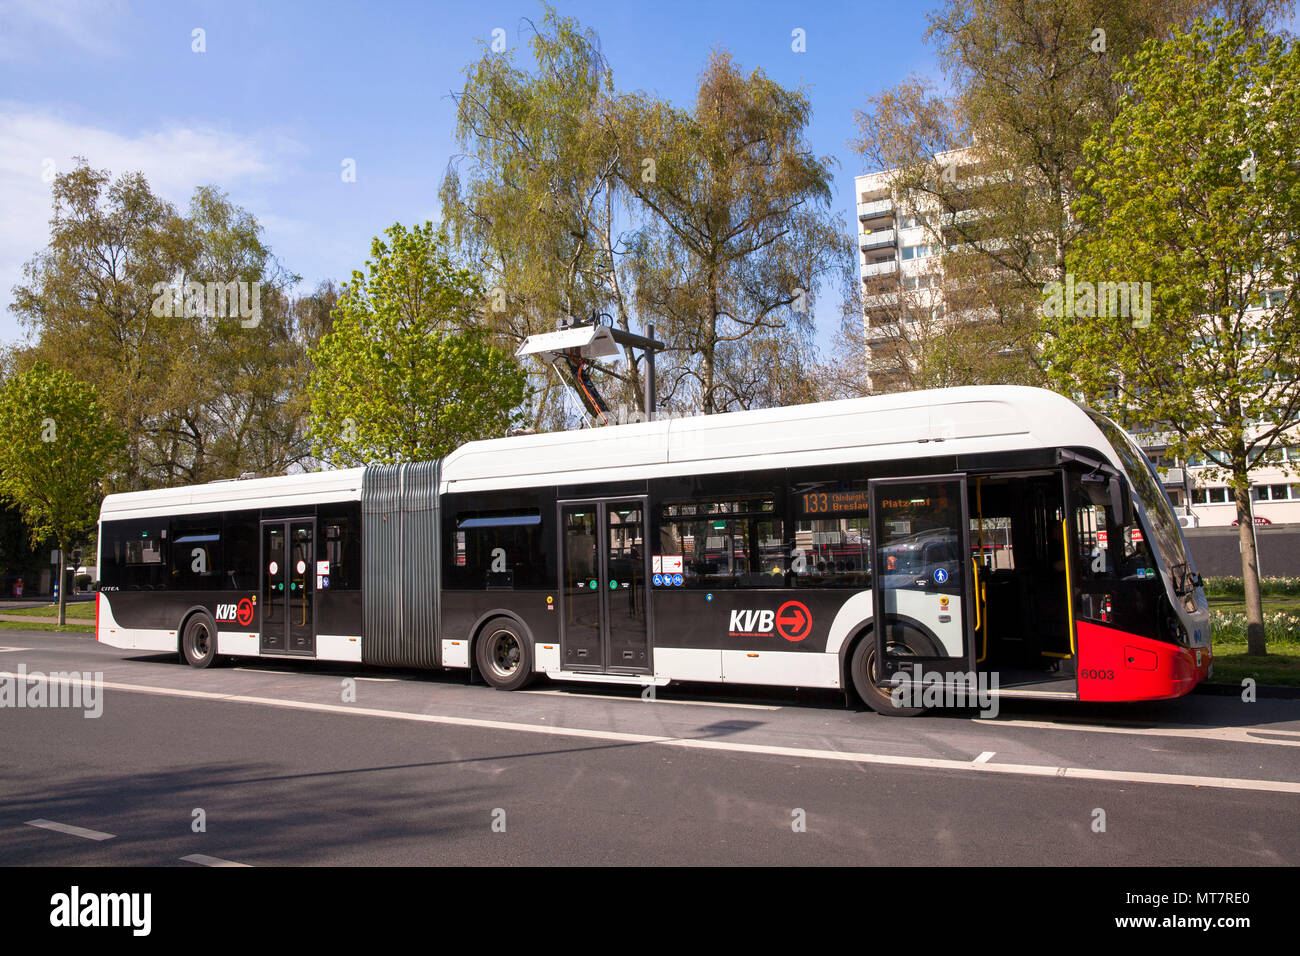 electric bus of the line 133 at a charging station at Hoeninger Platz, Cologne, Germany.  Elektrobus der Linie 133 an einer Ladestation am Hoeninger P Stock Photo